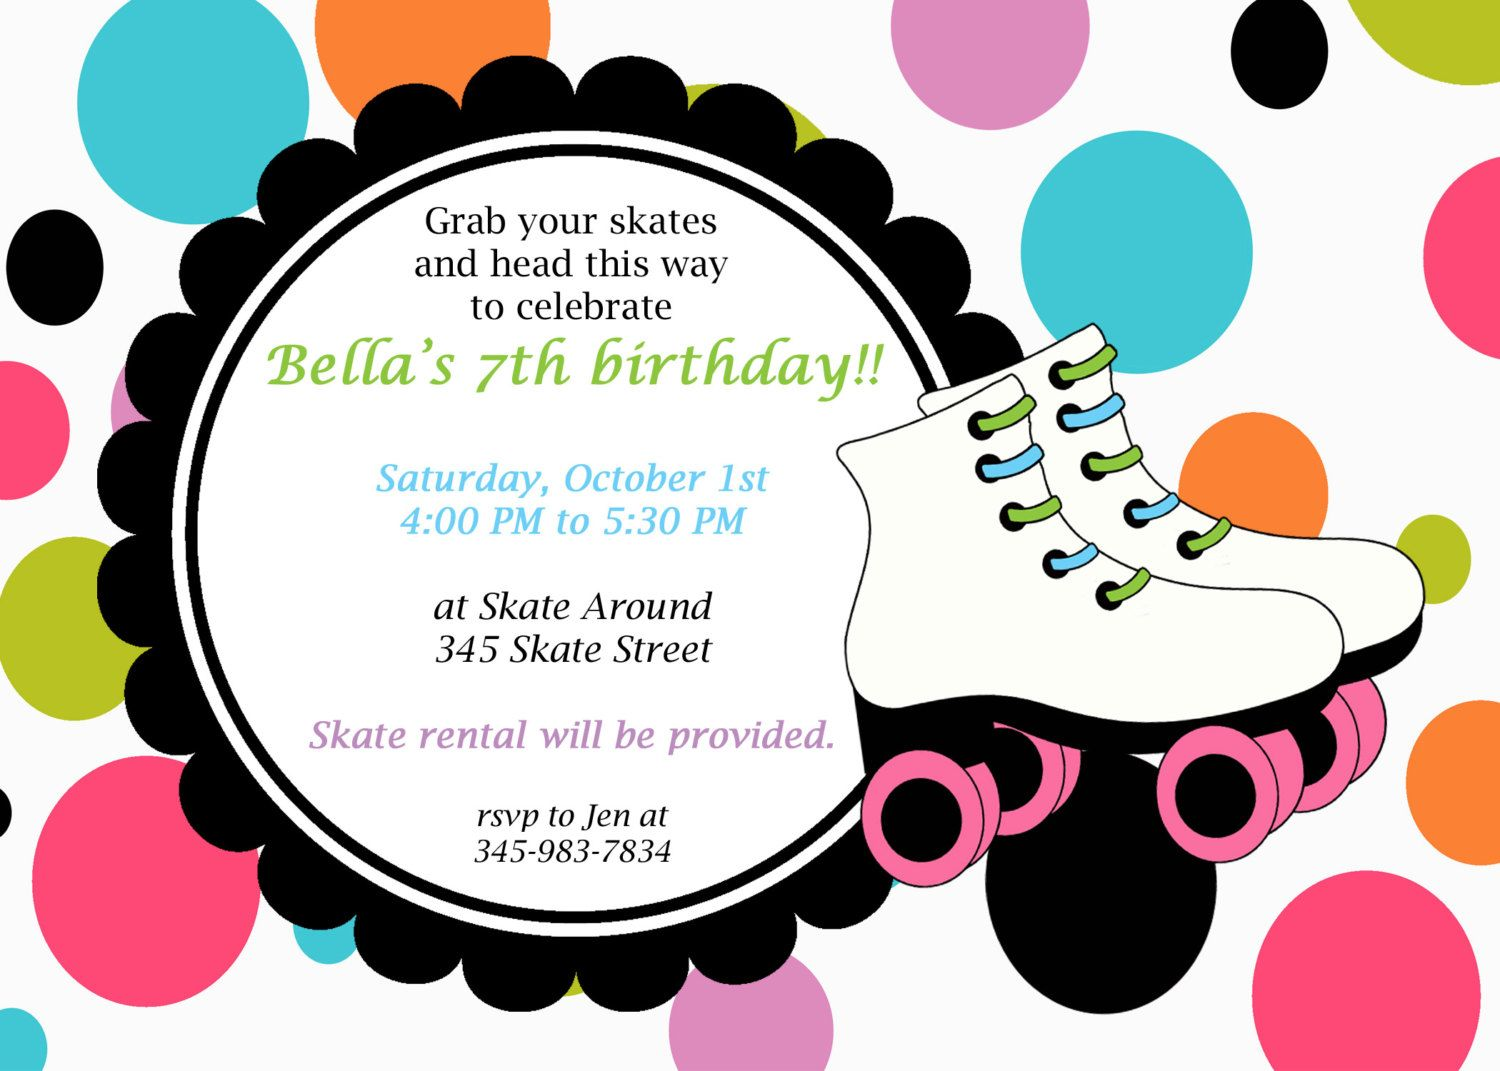 picture about Free Printable Roller Skate Template known as Printable Roller Skating Invites Birthday Programs within just